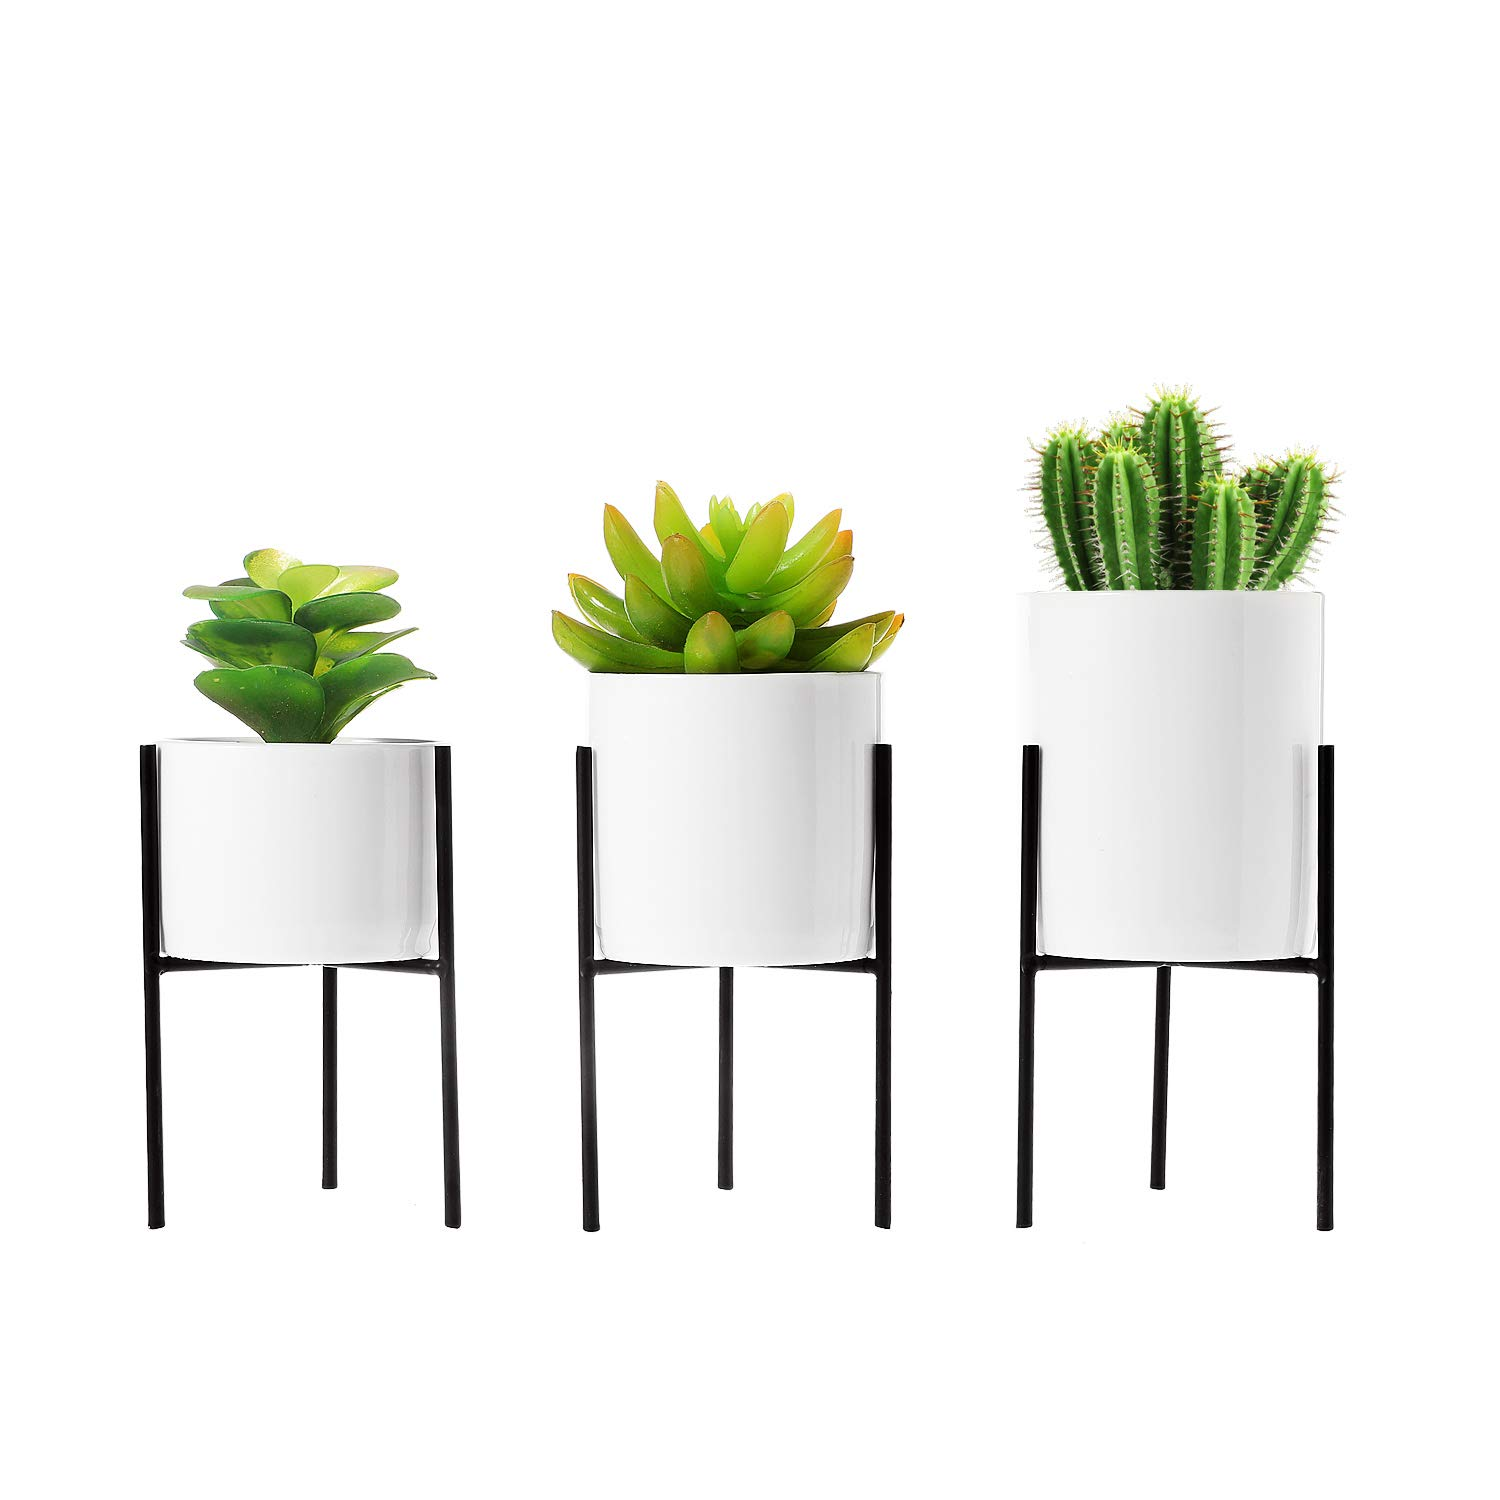 T4U Small Ceramic Plant Pot with Metal Stand and Drainage Hole Window Boxes Succulent Cactus Flower Pot White with Iron Stand Holder for Desktop and Home Decor, Set of 3 Excluding Plant